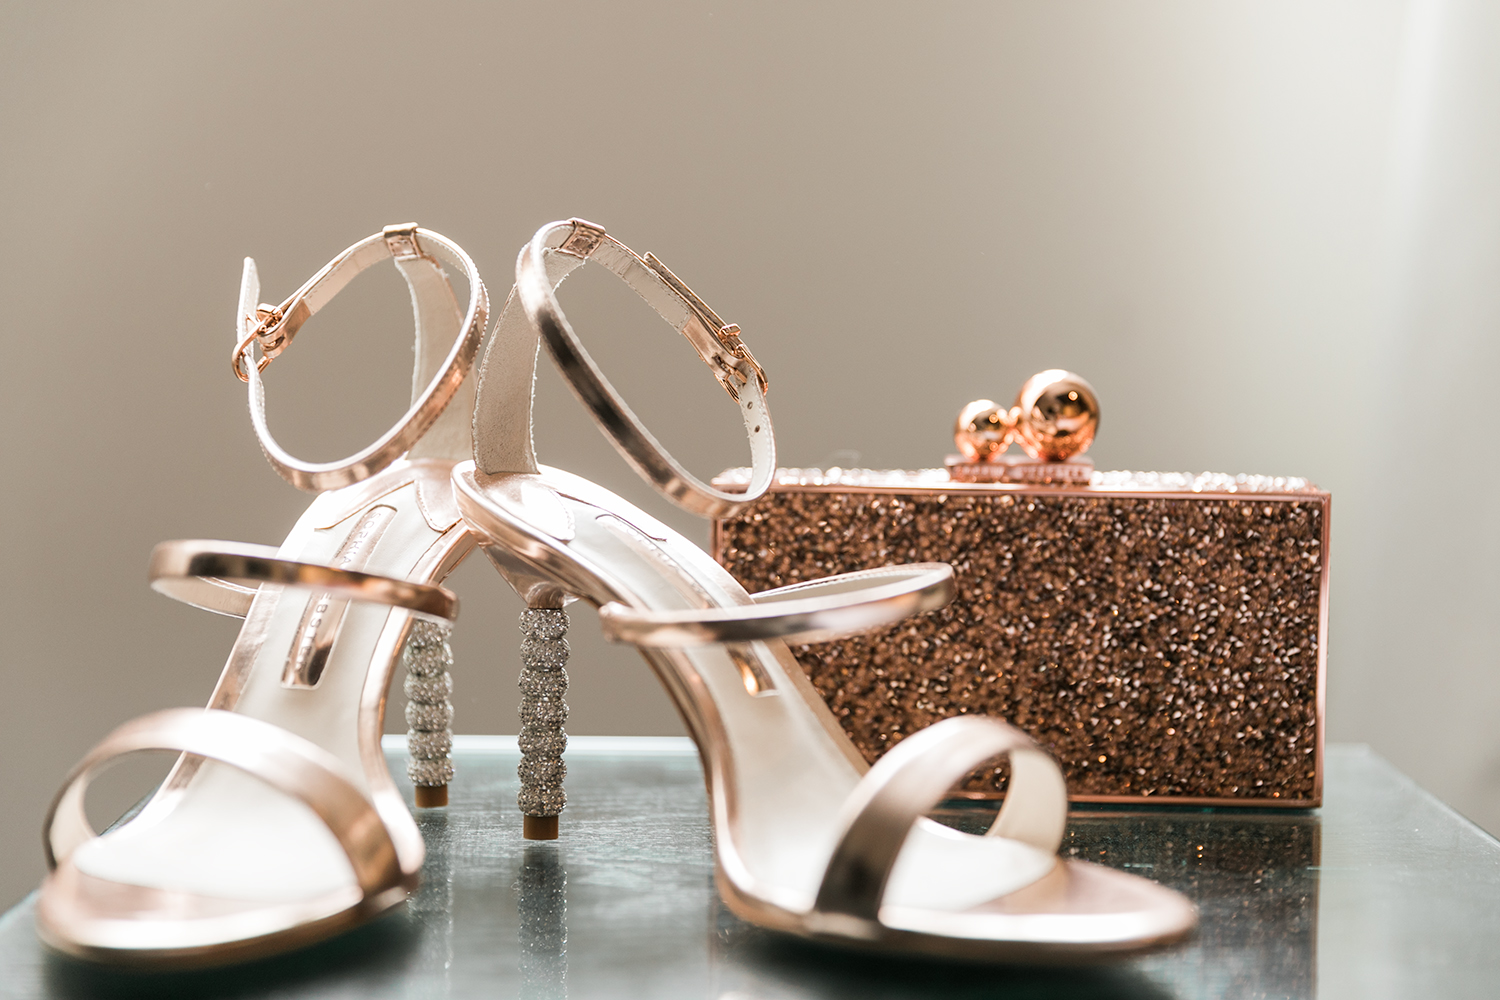 image of Tudor Place wedding detail rose gold wedding shoes and clutch purse